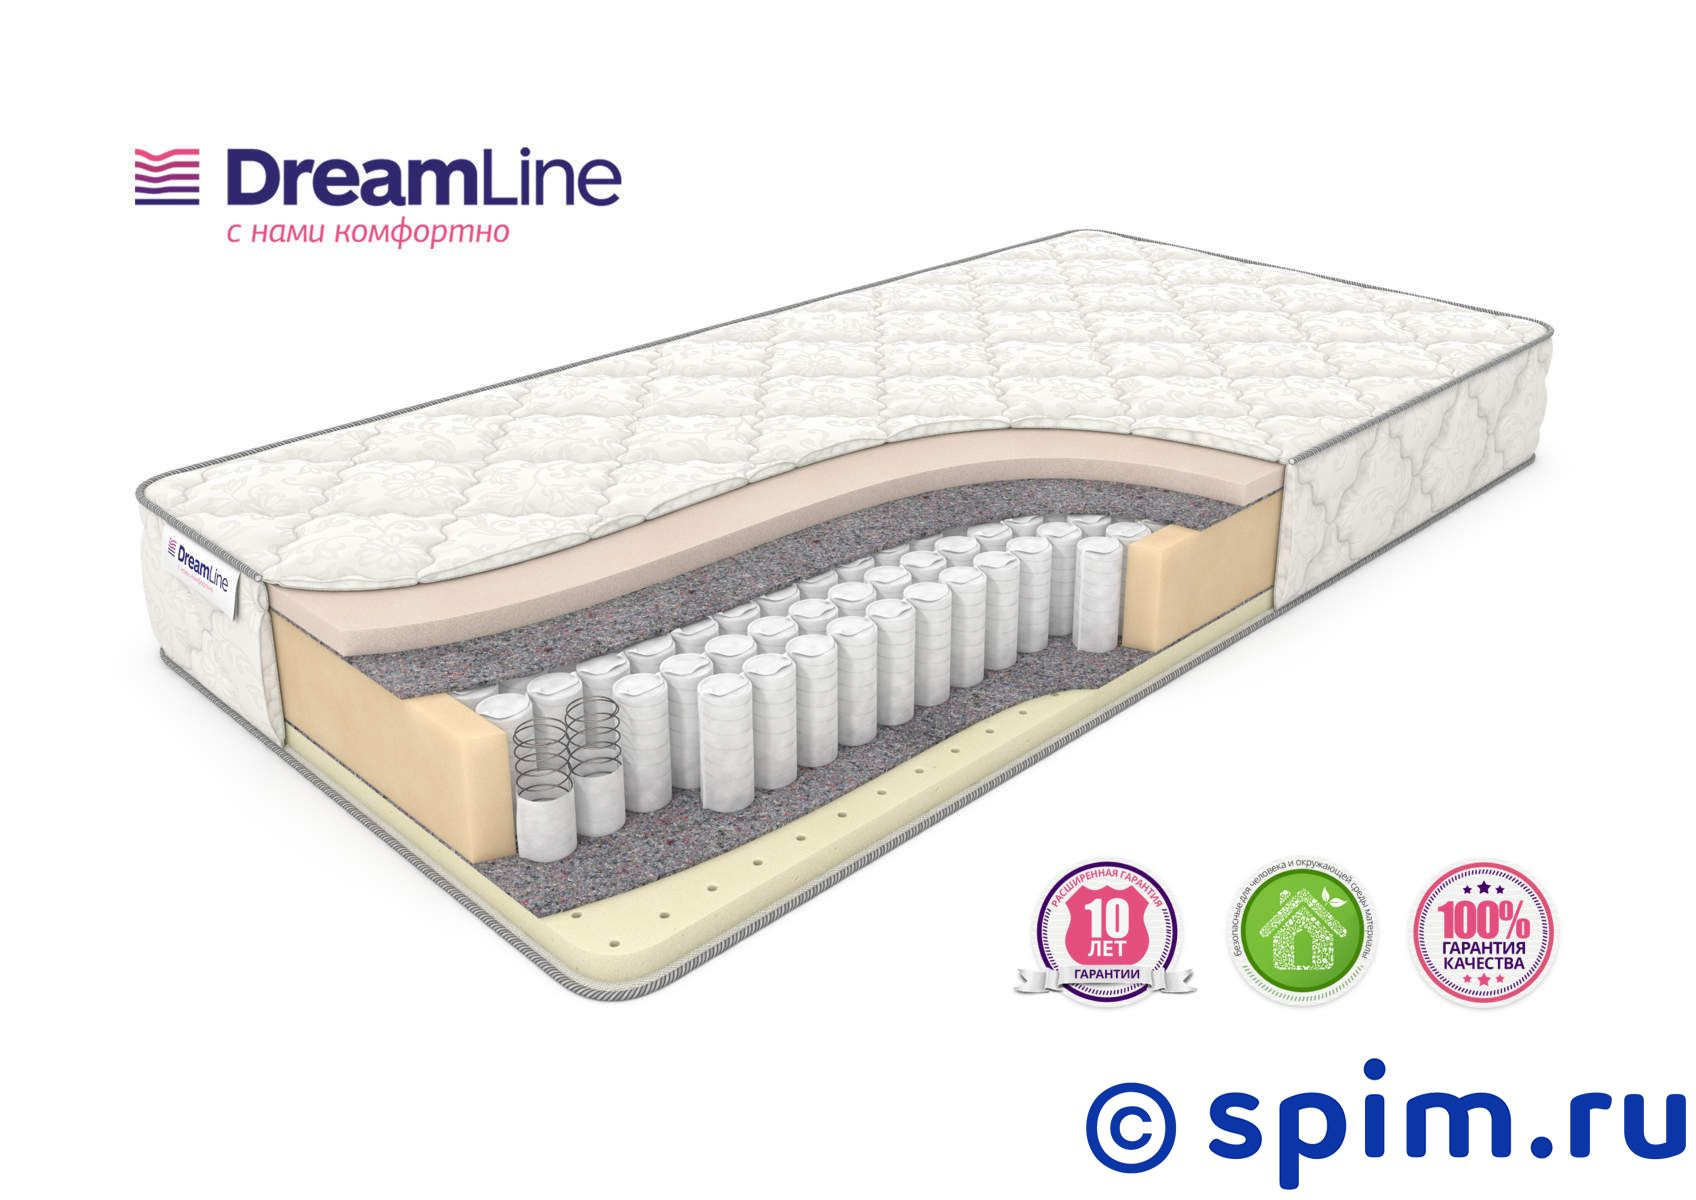 Матрас DreamLine Memory Sleep Tfk 180х195 см